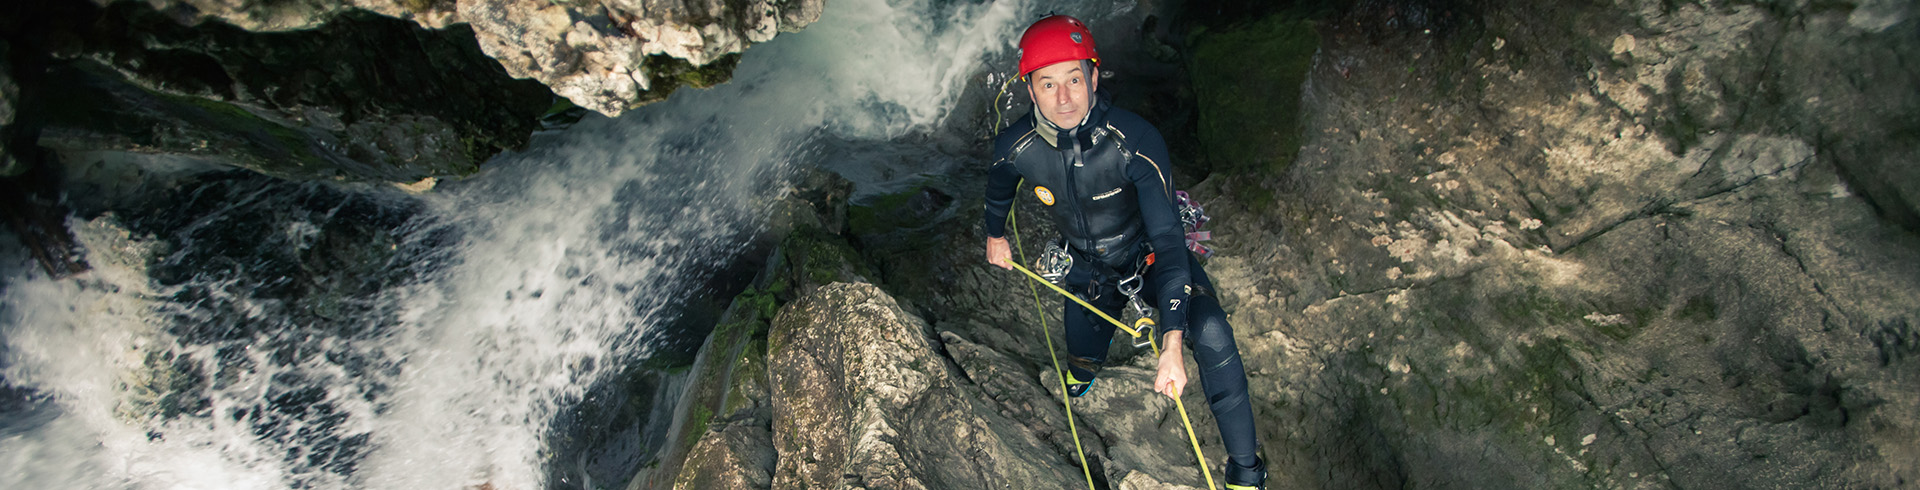 Canyoning Bob abseiling Grmecica Canyon, Bled, Slovenia